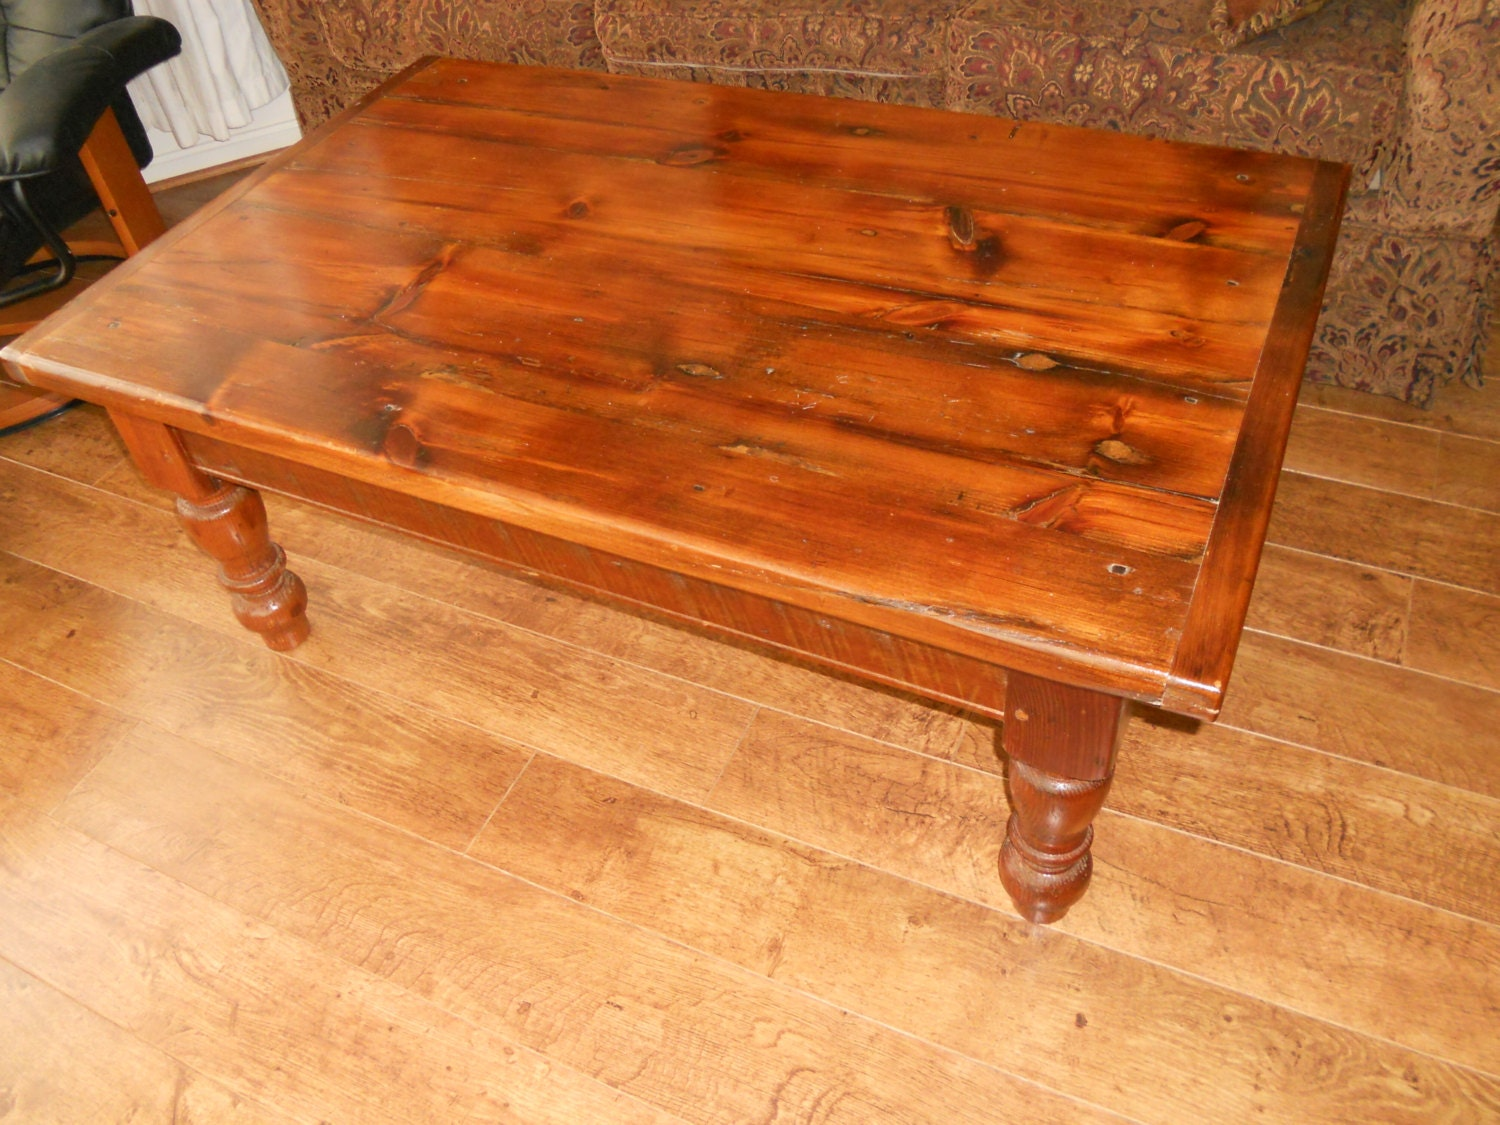 Reclaimed barn wood coffee table 48 x 30 x 19 by for Coffee table 48 x 30